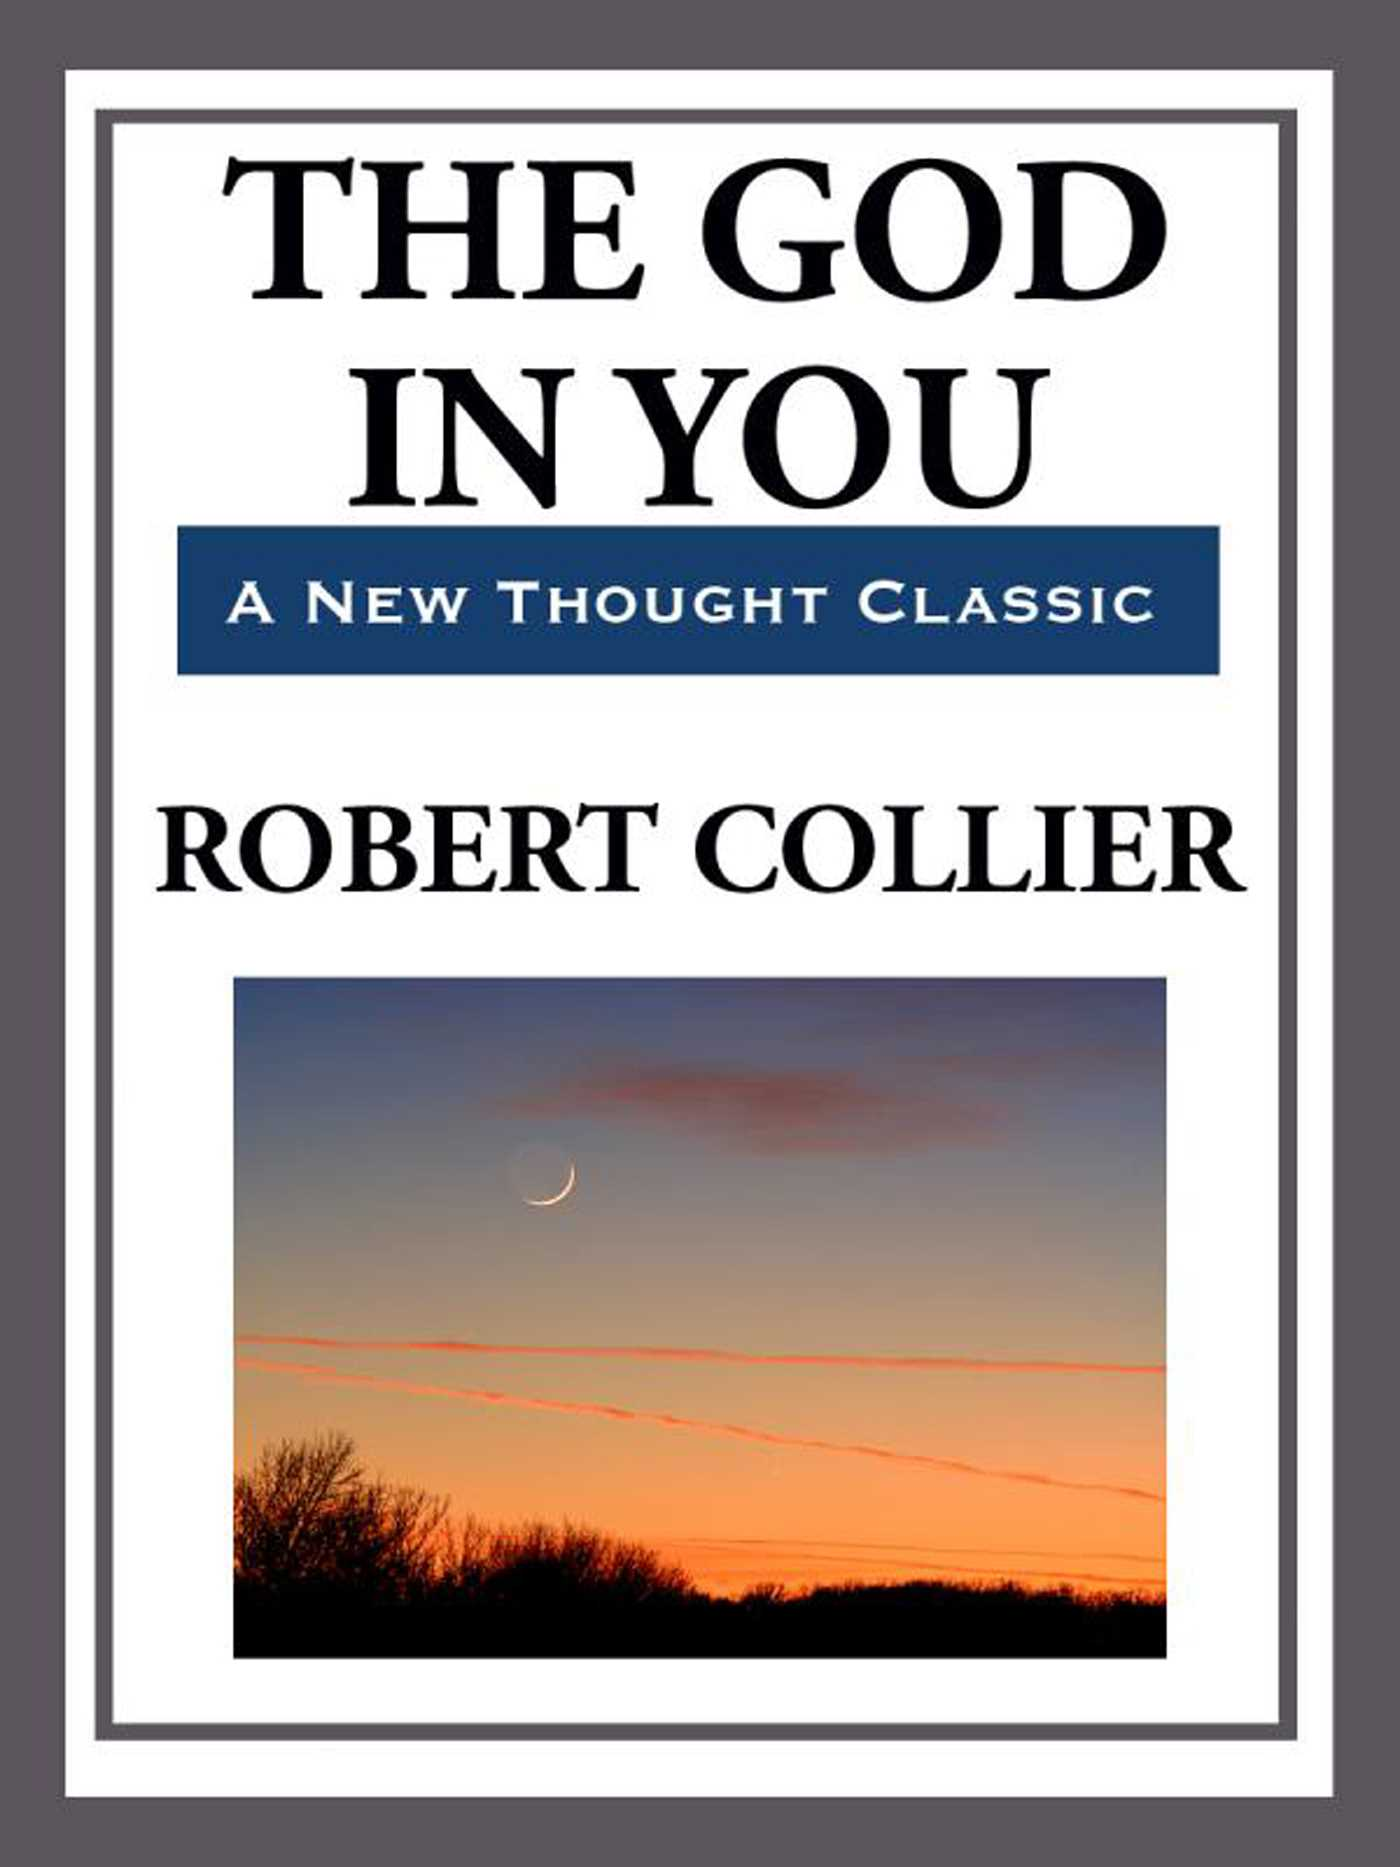 The God in You eBook by Robert Collier   Official ...